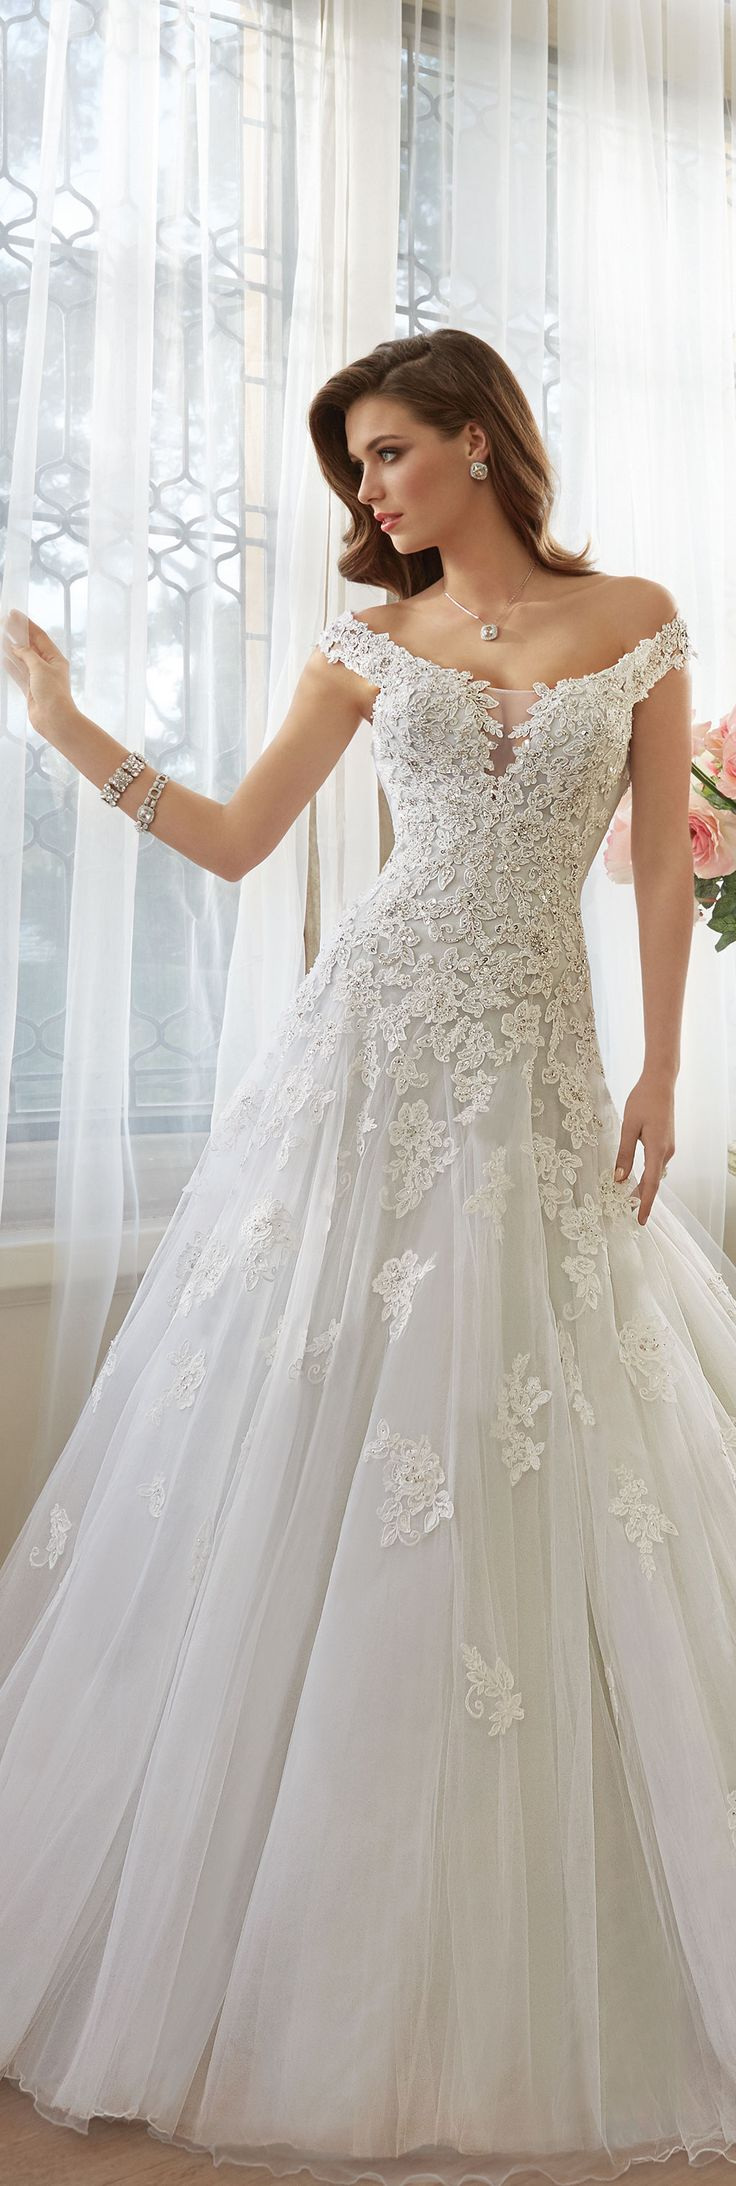 The Sophia Tolli Spring 2016 Wedding Dress Collection - Style No. Y11635 - Vasya #laceweddingdresses